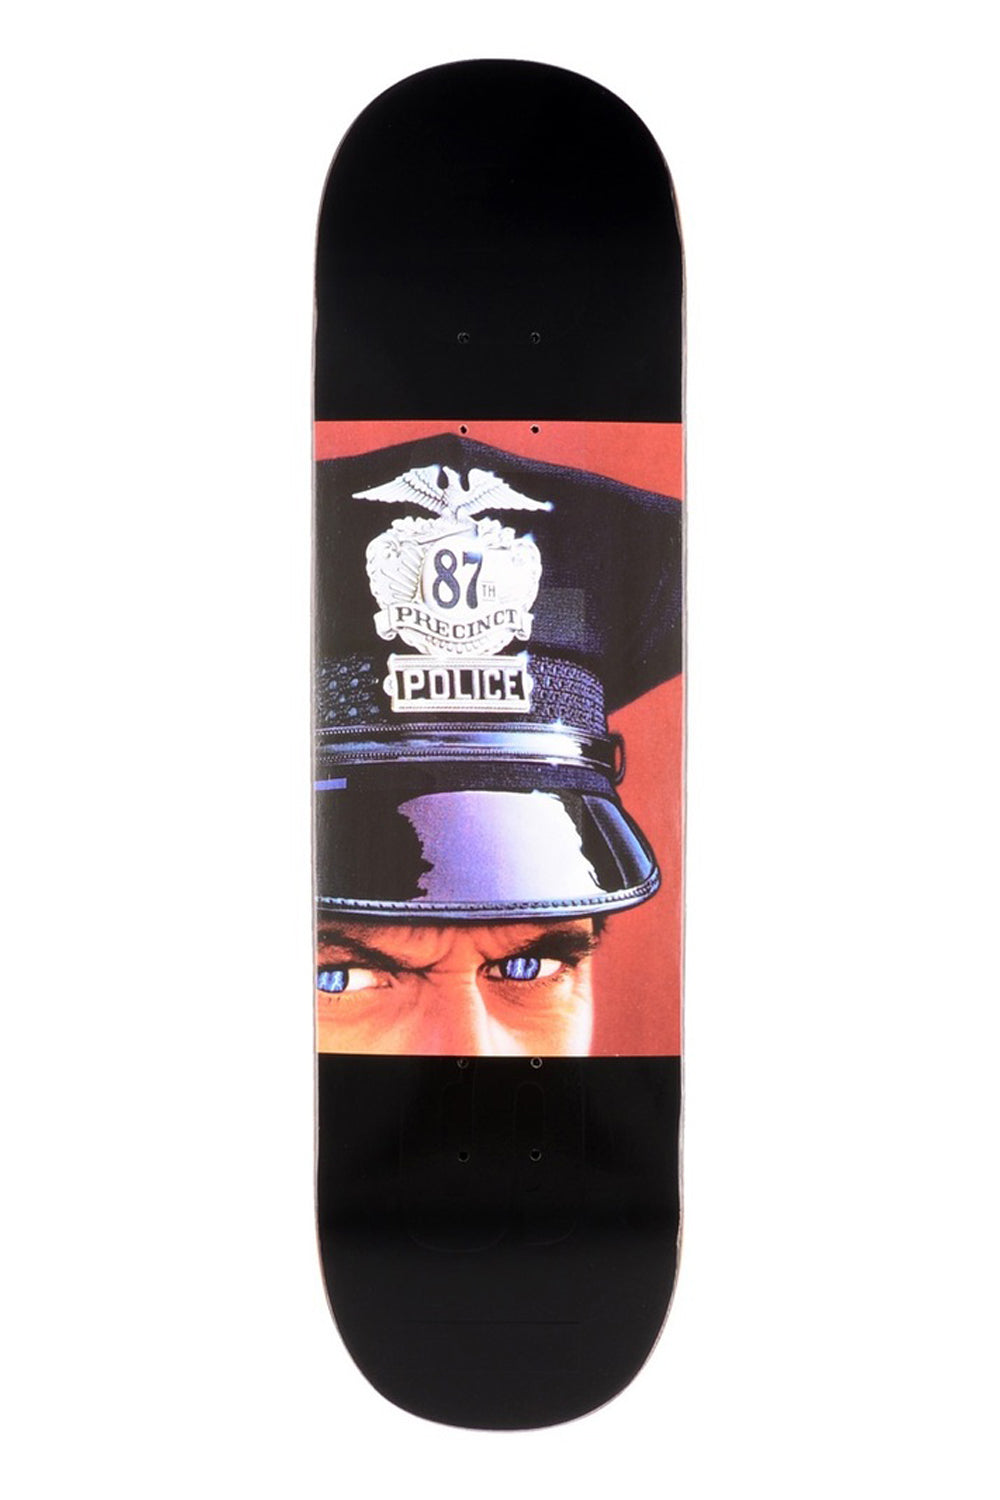 Quasi Cop Skateboard Deck - 8.5"